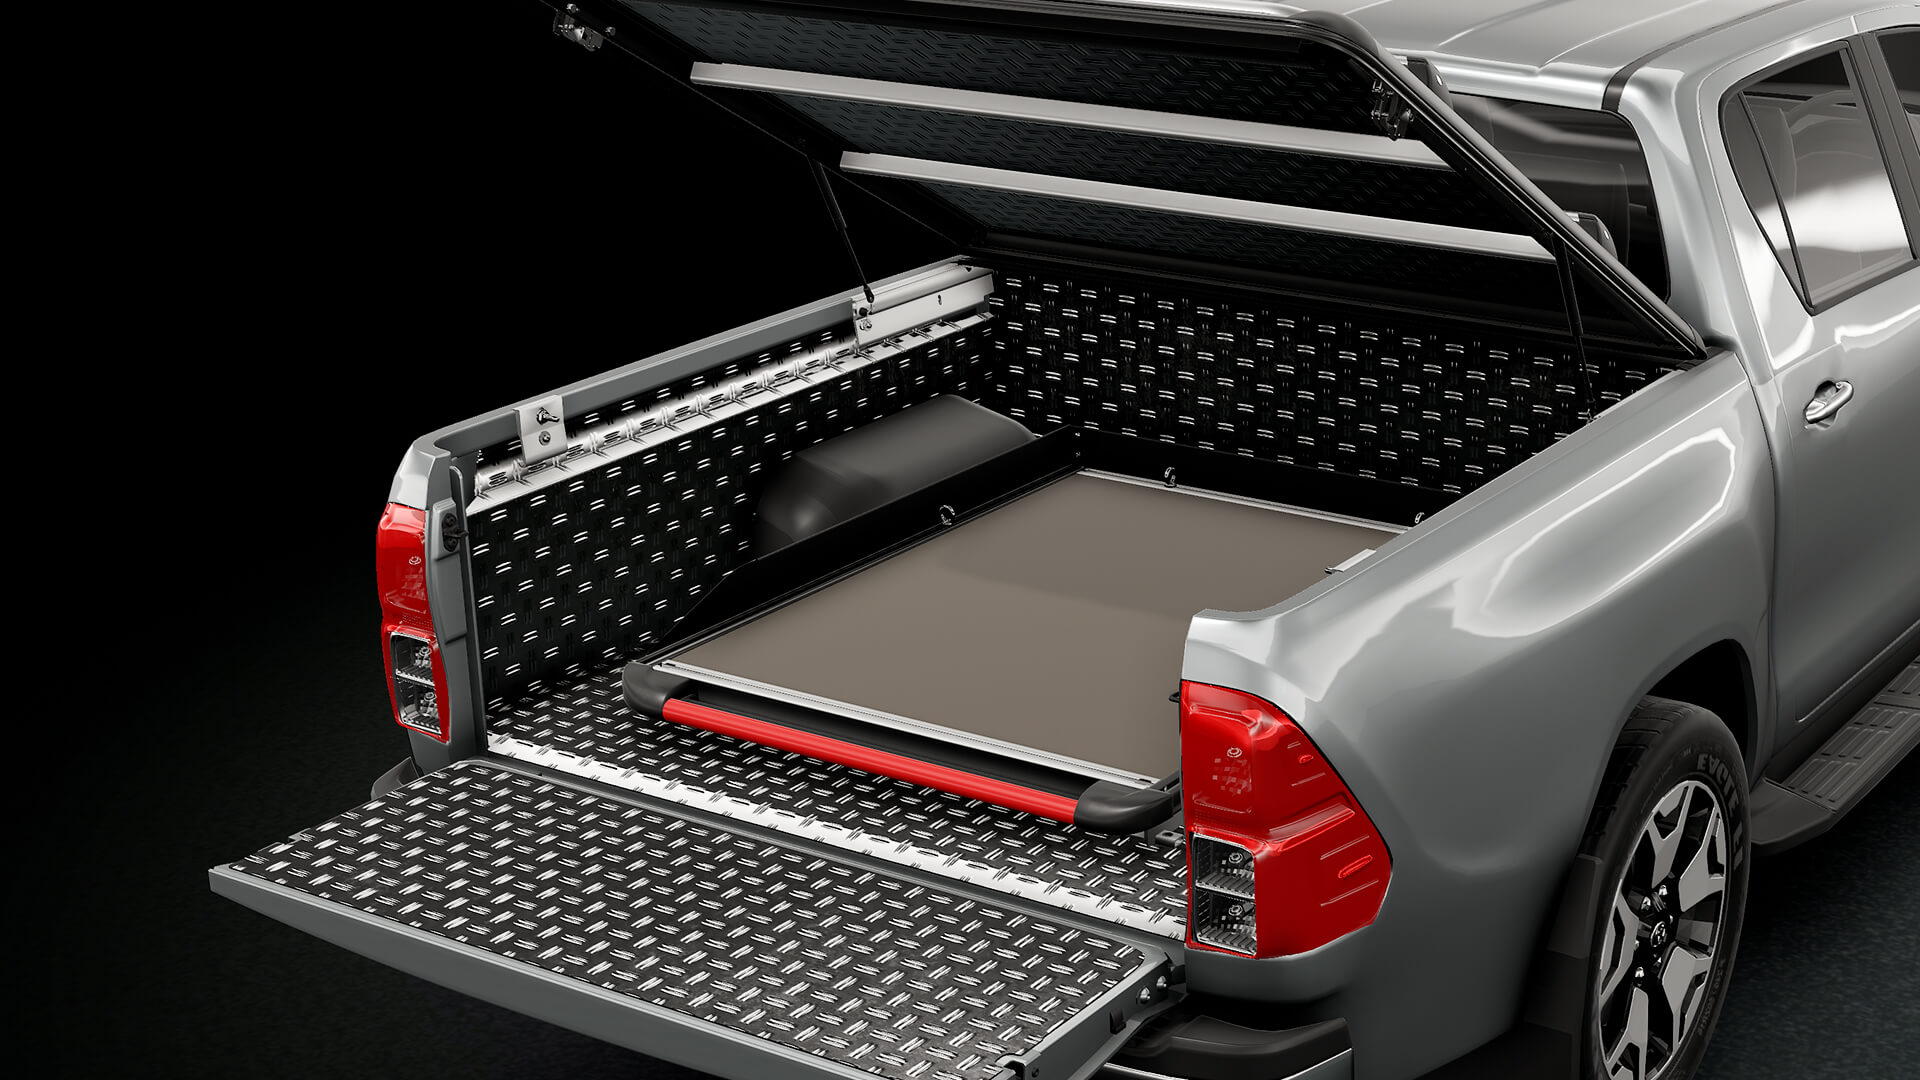 Mountain Top Cargo Slide and Alu Bedliner for maximum protection of your pickup truck